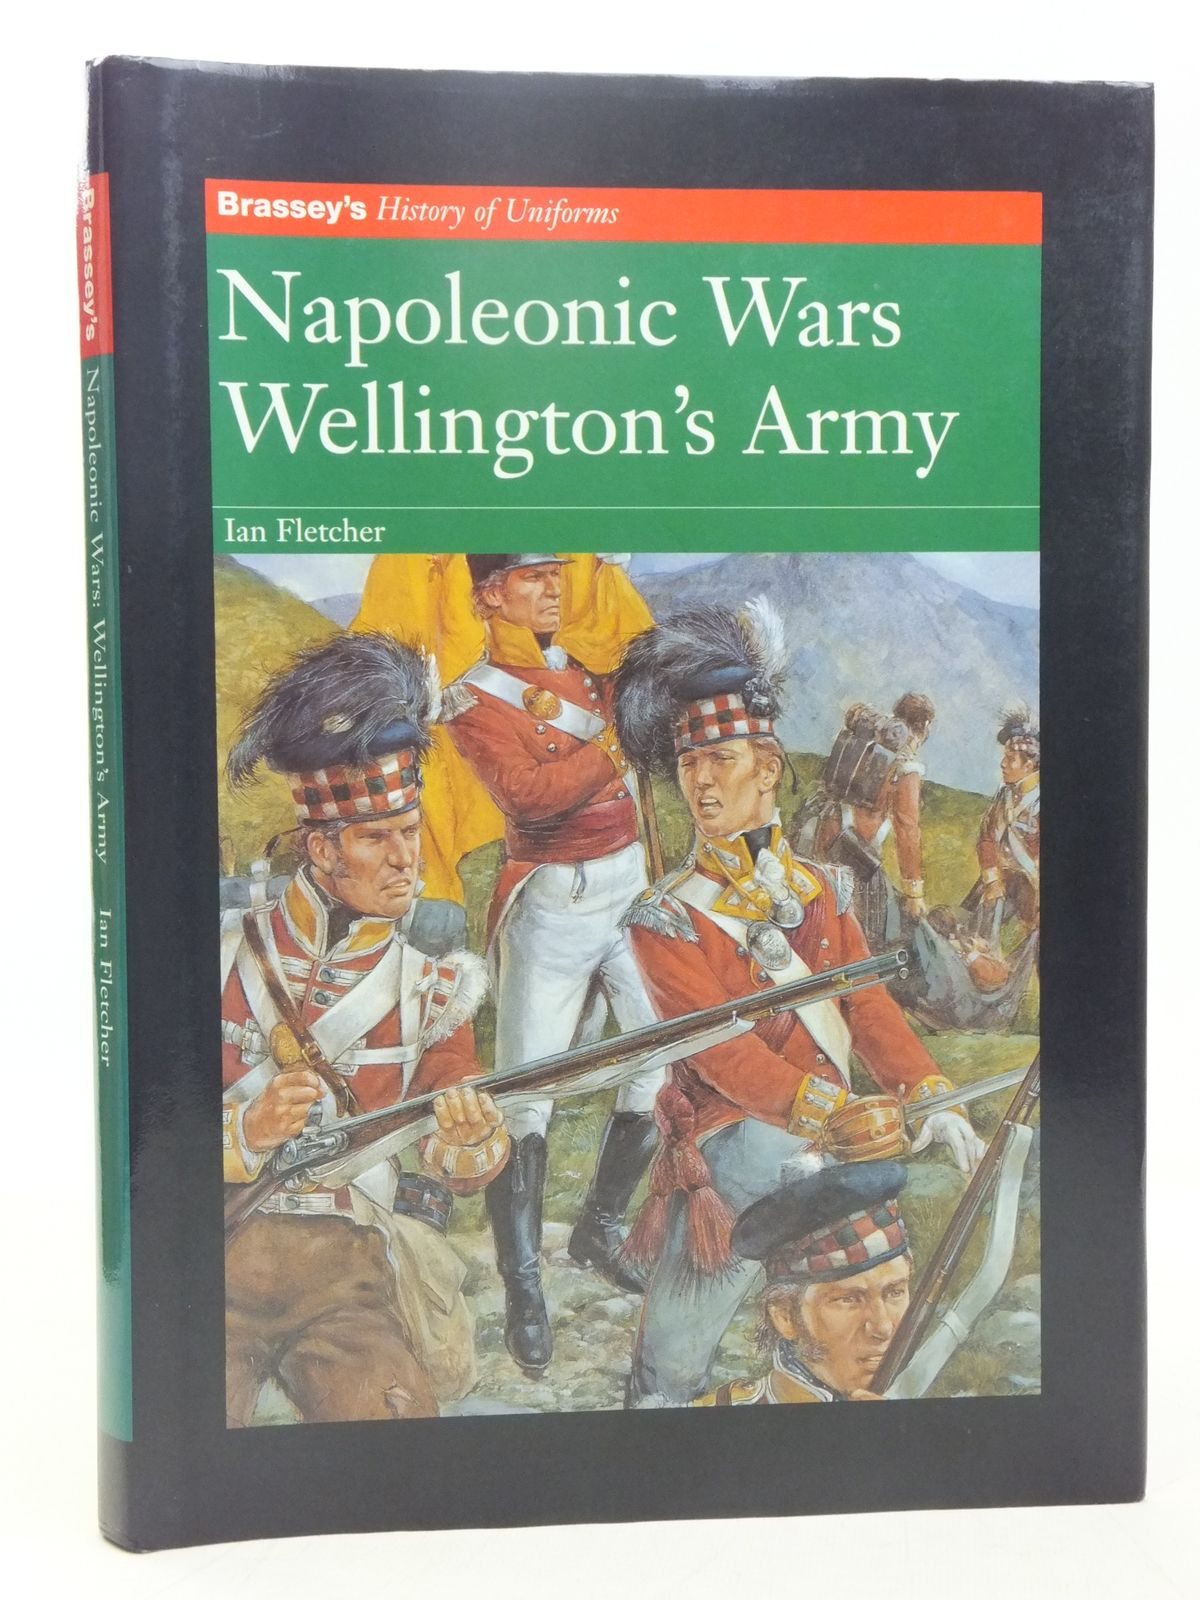 Photo of NAPOLEONIC WARS WELLINGTON'S ARMY written by Fletcher, Ian illustrated by Hook, Richard published by Brassey's (STOCK CODE: 2118294)  for sale by Stella & Rose's Books